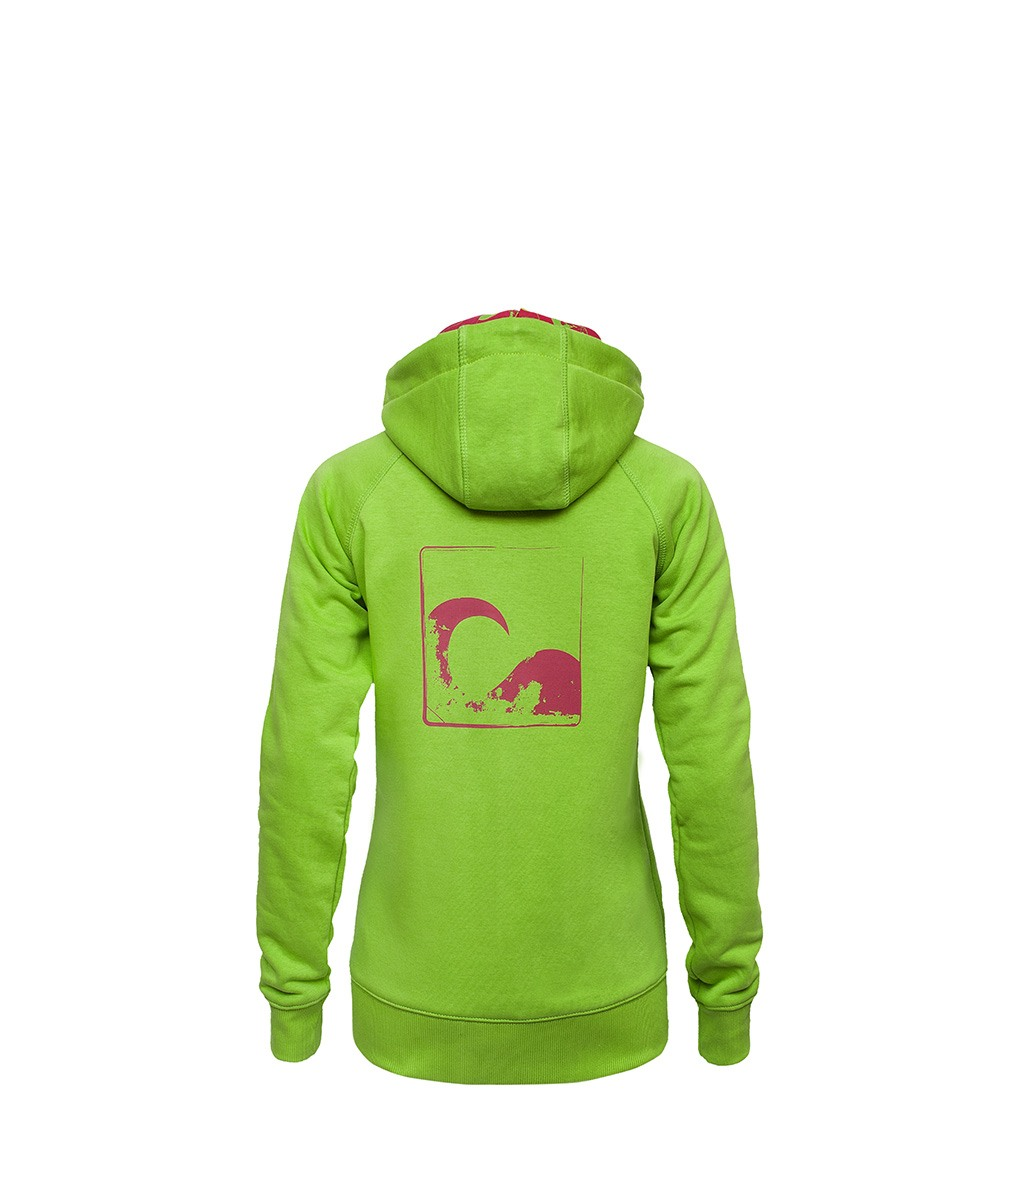 Evokaii Women Surf Style Zipper Hoodie - Wave Green Back